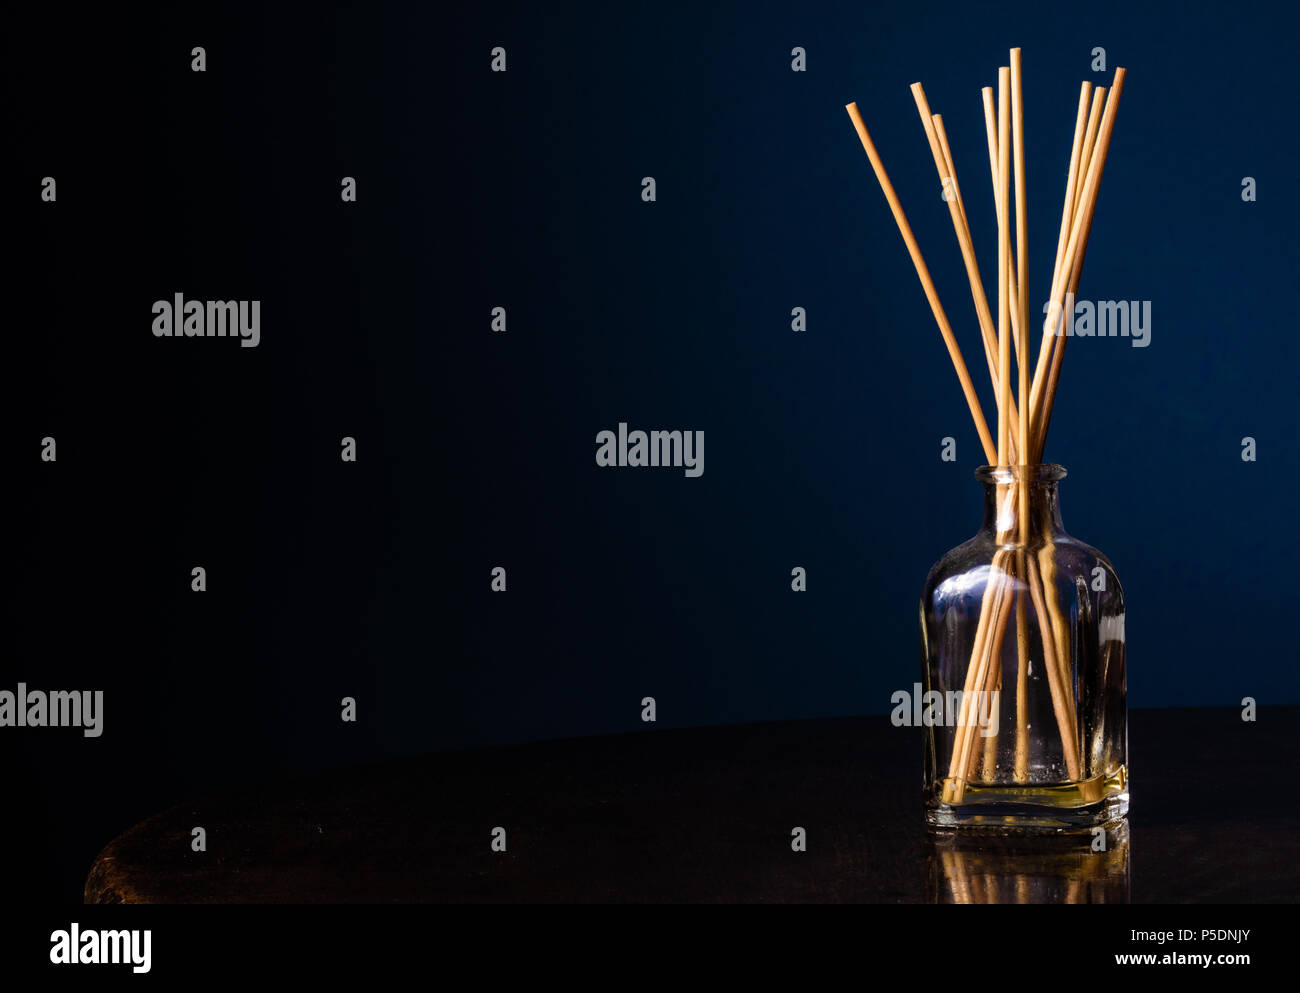 Reed Diffuser Stock Photos Amp Reed Diffuser Stock Images